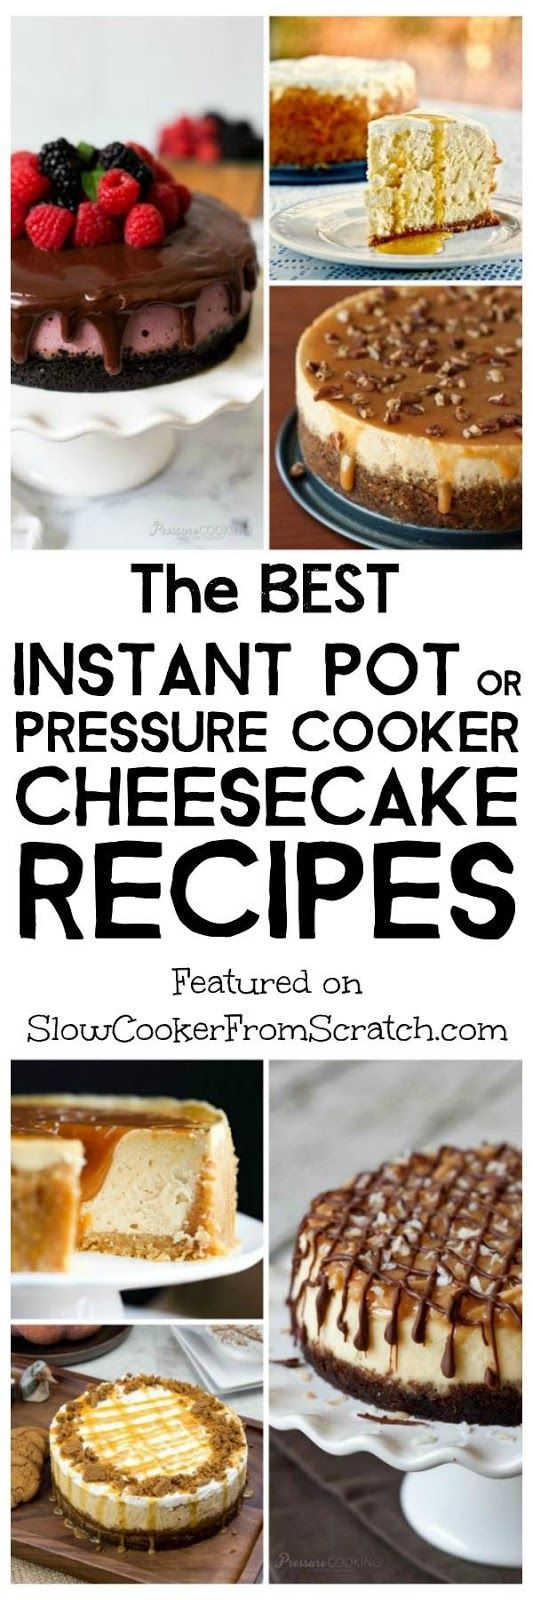 If you've been wanting to try making cheesecake in the Instant Pot, here are The BEST Instant Pot or Pressure Cooker Cheesecake Recipes from bloggers around the web. There are pressure cooker cheesecakes of every kind here, including a couple of low-carb cheesecake recipes!  [featured on SlowCookerFromScratch.com]